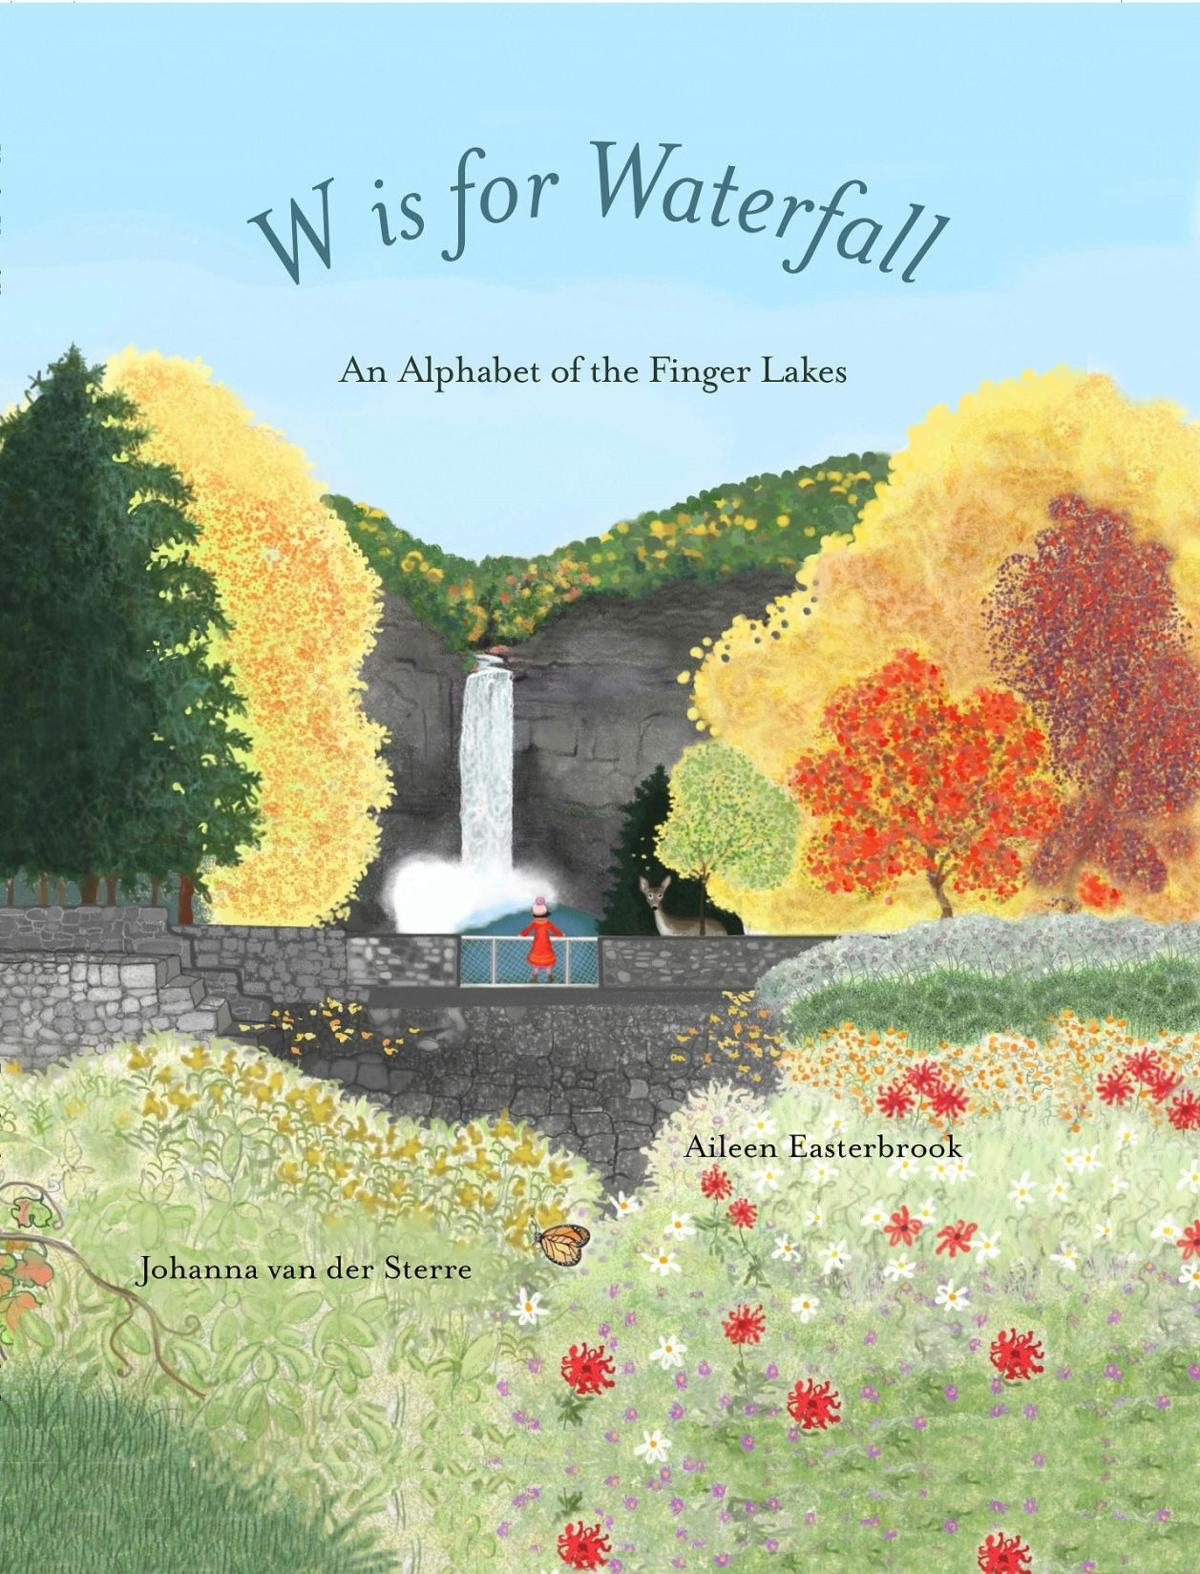 Book Jacket, W is for Waterfall